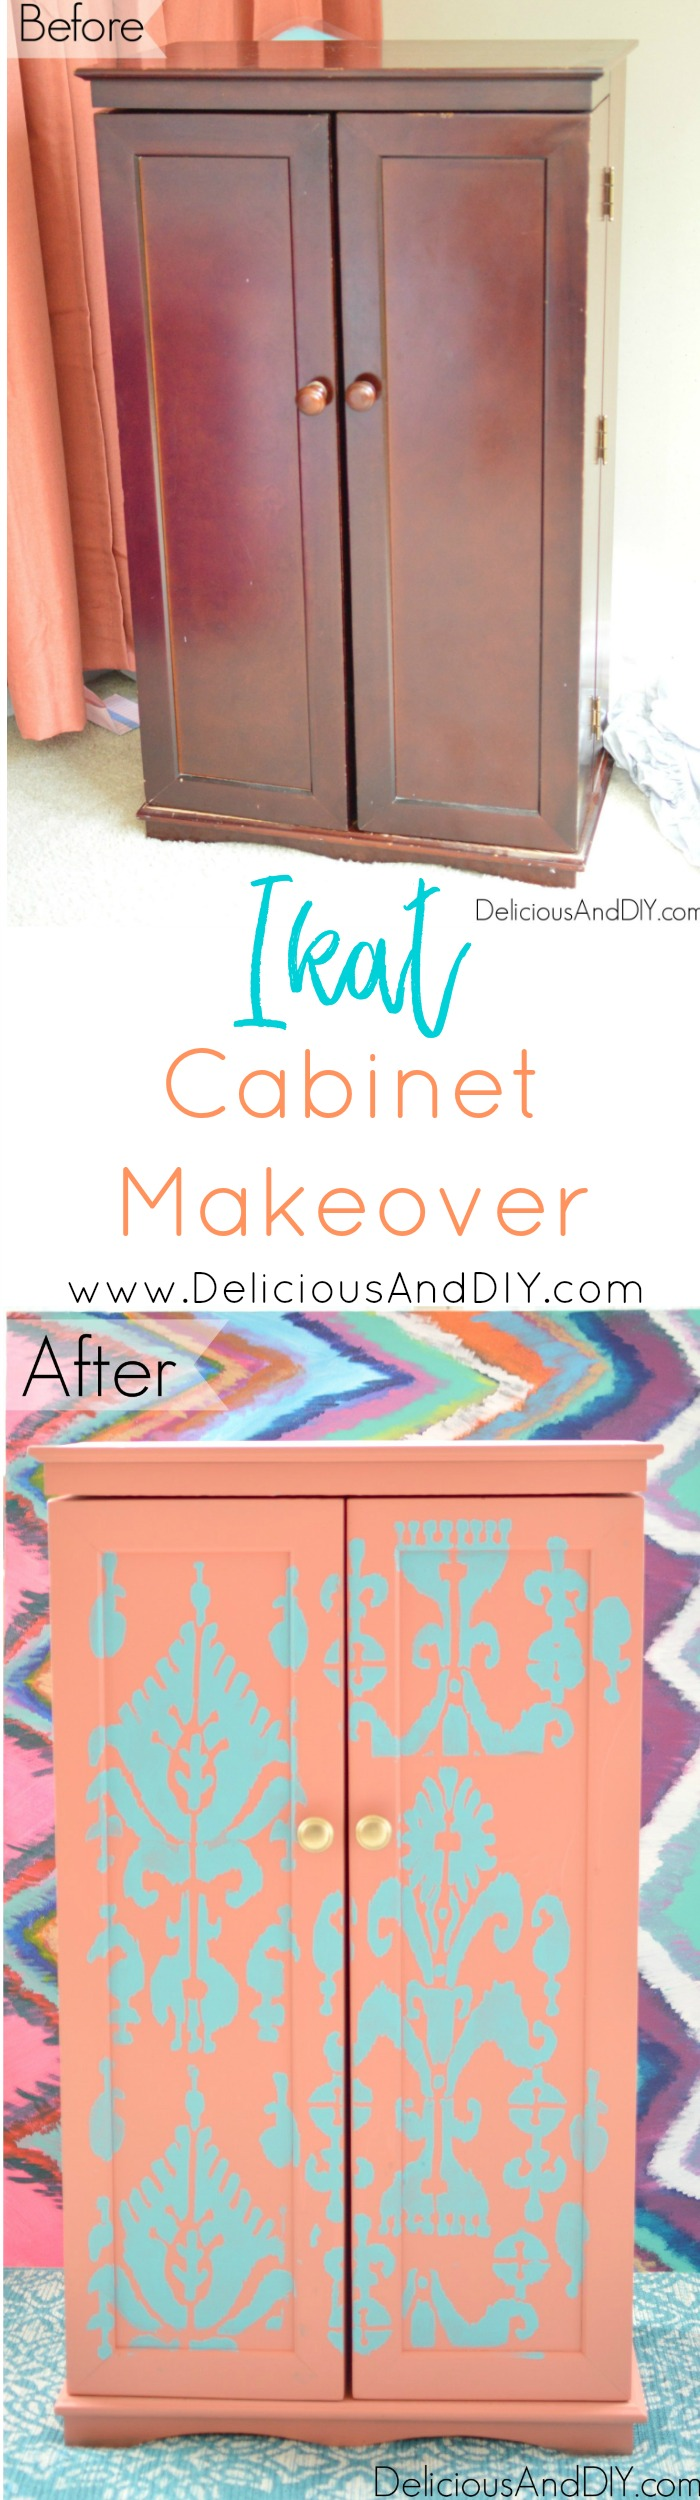 Gorgeous Ikat Cabinet Makeover using bright colored paints and a stencil| Home Decor| Painted Furniture| DIY Projects| Stenciled Projects| Furniture Makeover| Repurposed Furniture| Ikat Pattern